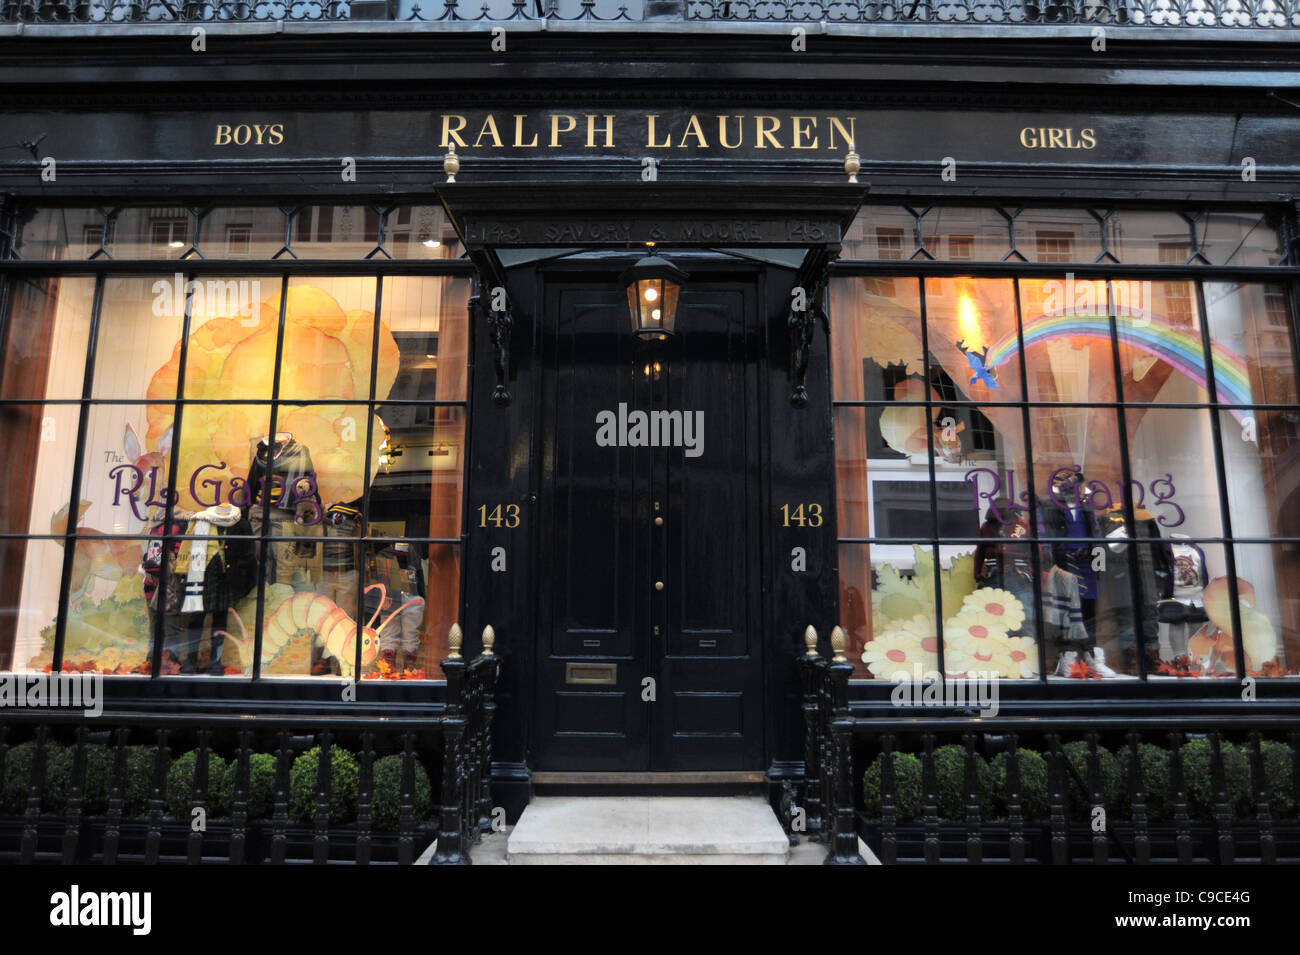 6fa5a2e9d Exterior shot of the Ralph Lauren store on Bond Street London England 2011  - Image Copyright